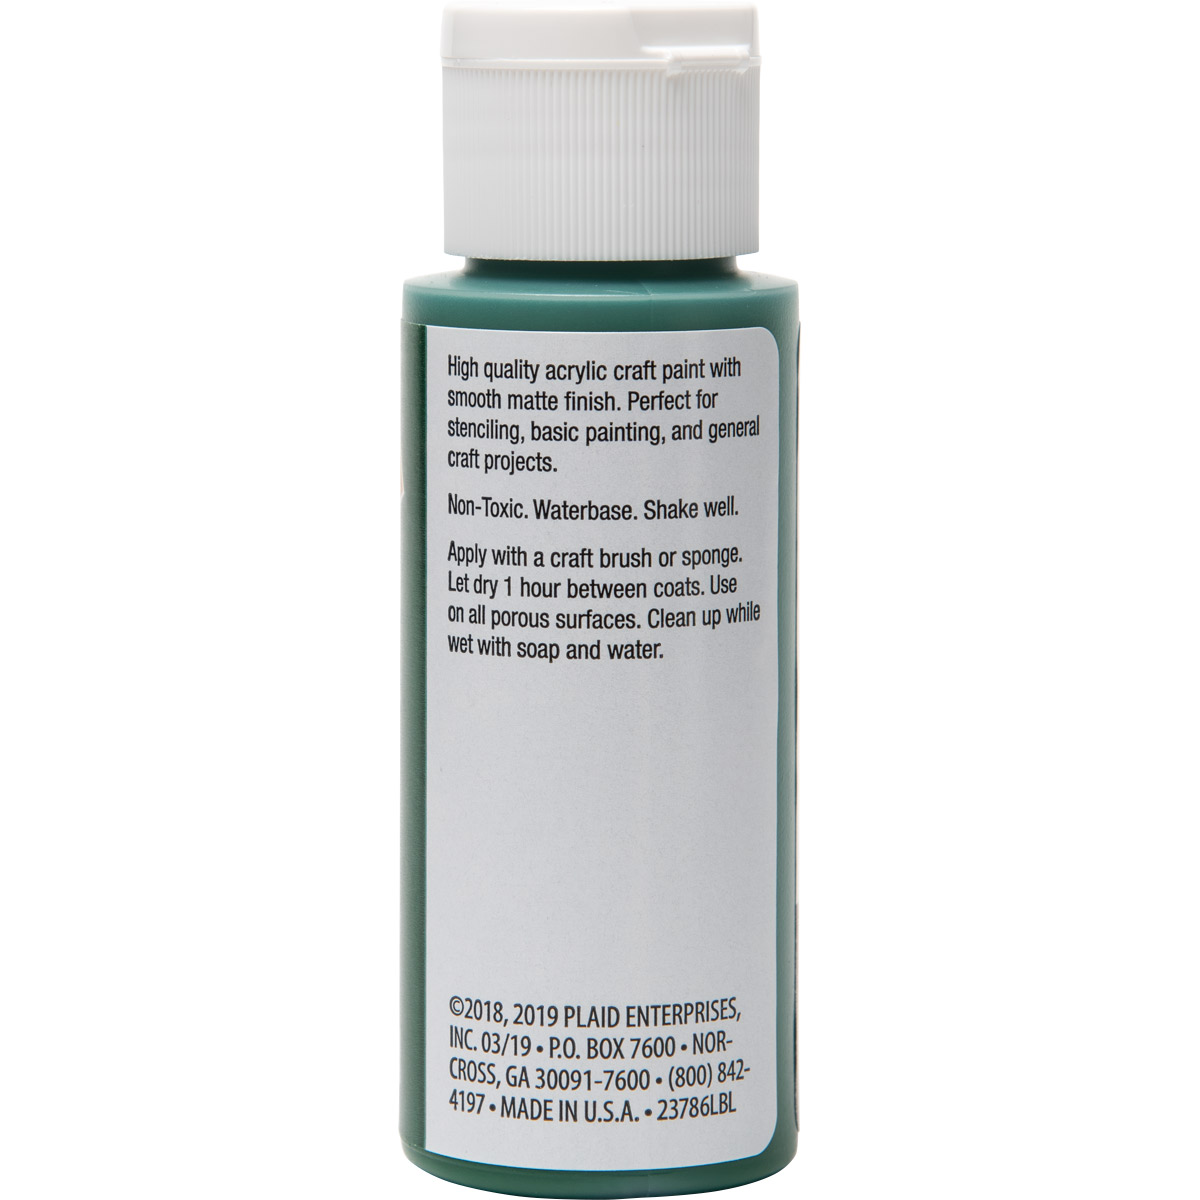 Plaid ® Painter's Palette™ Acrylic Paint - Green, 2 oz.